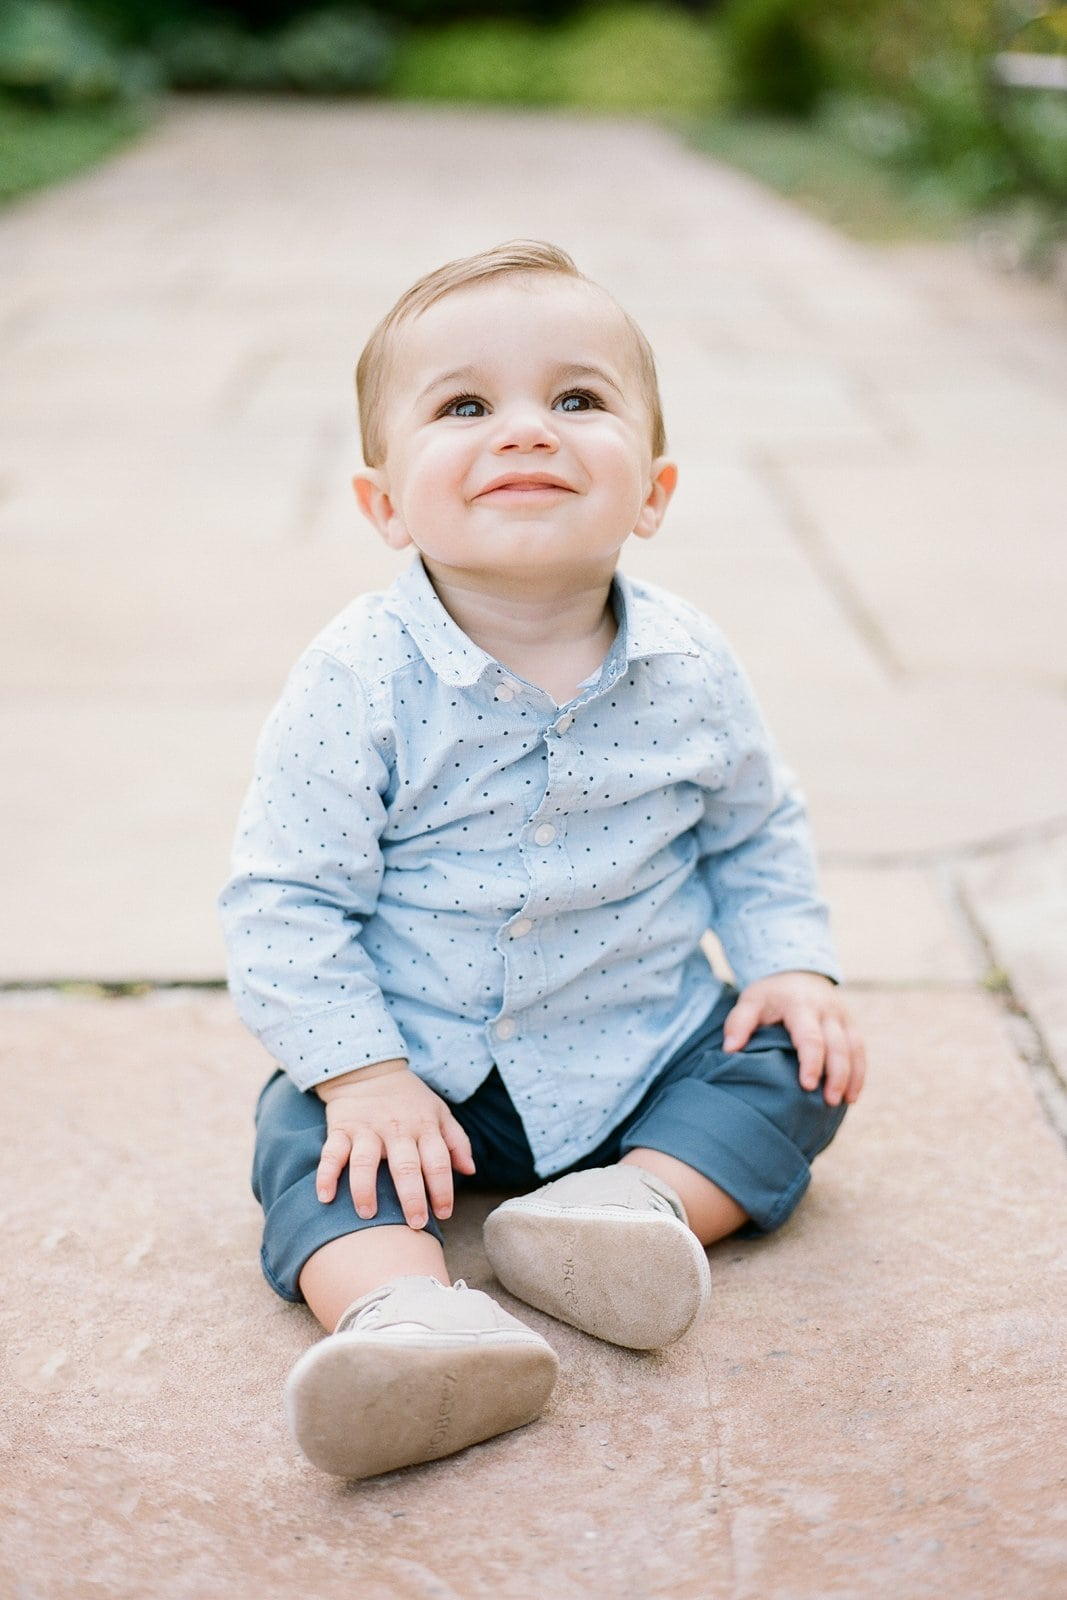 toddler sitting on the ground at the park in blue shirt and pants